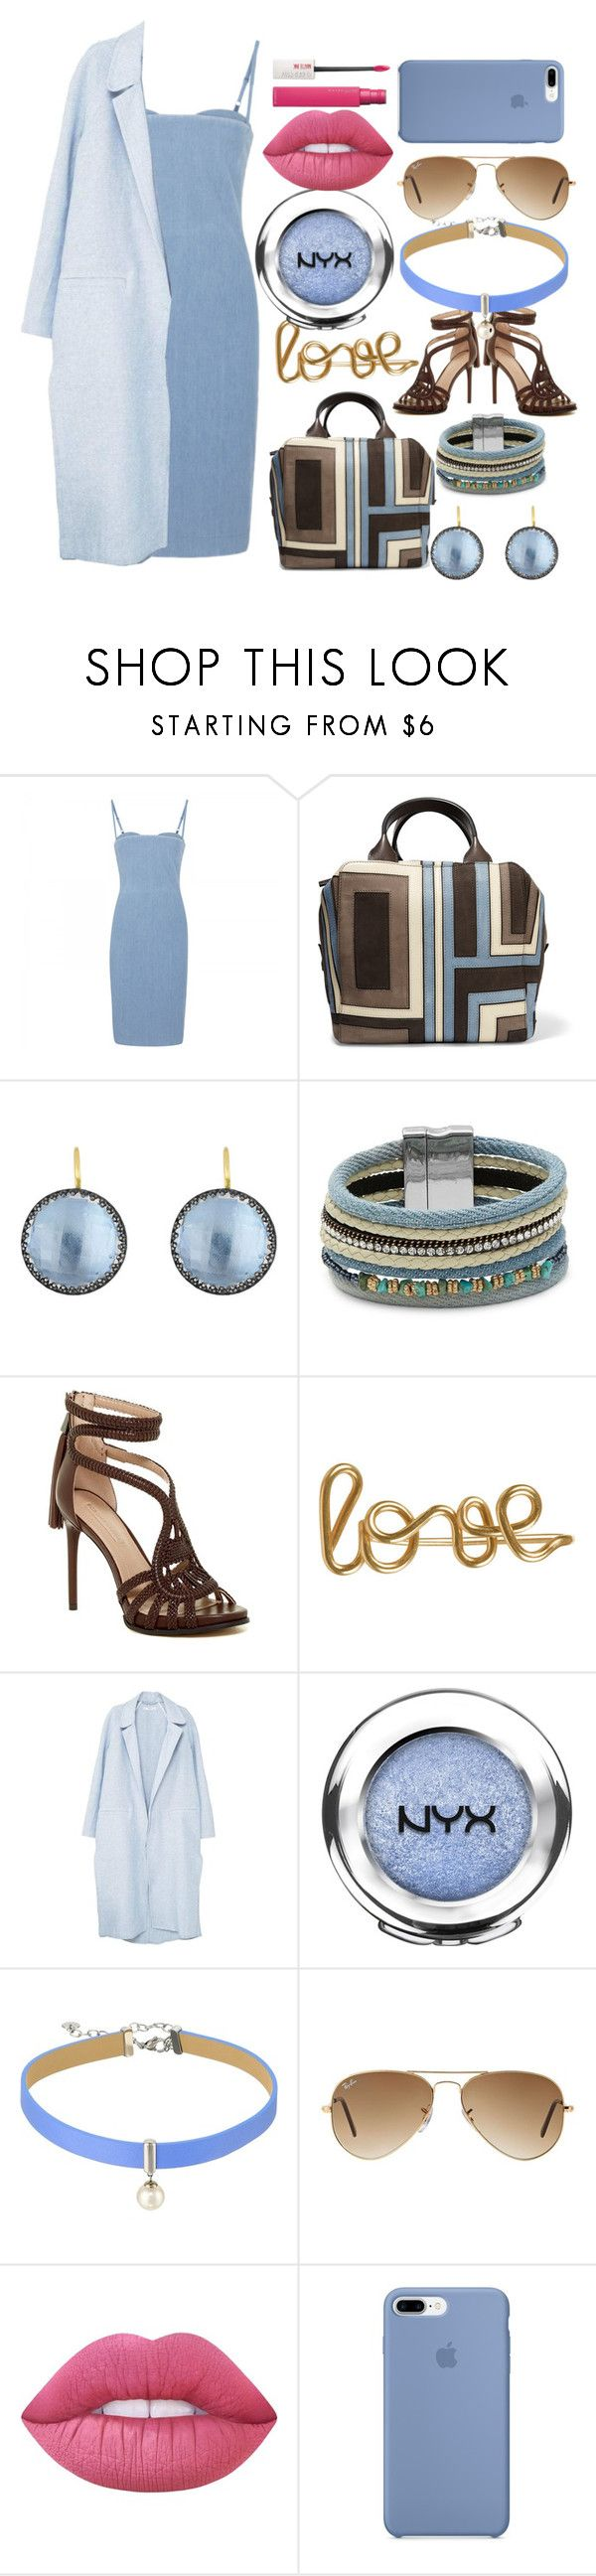 """""""Untitled #21"""" by hollysisther4life ❤ liked on Polyvore featuring beauty, Acne Studios, Tory Burch, Larkspur & Hawk, Design Lab, BCBGMAXAZRIA, Atelier Paulin, MANGO, NYX and Majorica"""